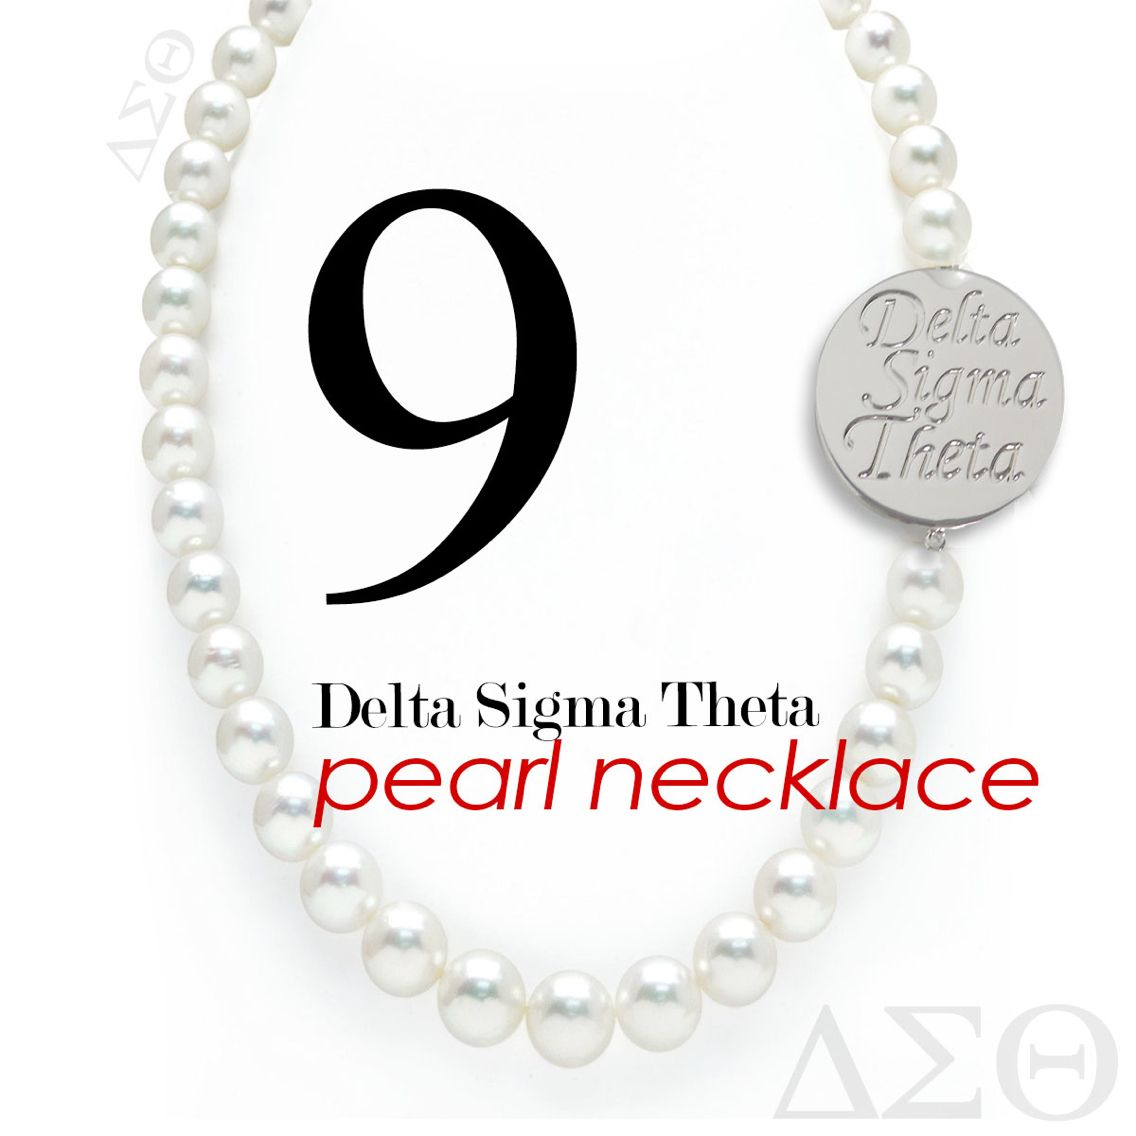 Pearls white shell pearl necklace with double sided silver plated white shell pearl necklace with double sided silver plated delta sigma theta script rotate for delta sigma theta greek symbols biocorpaavc Image collections